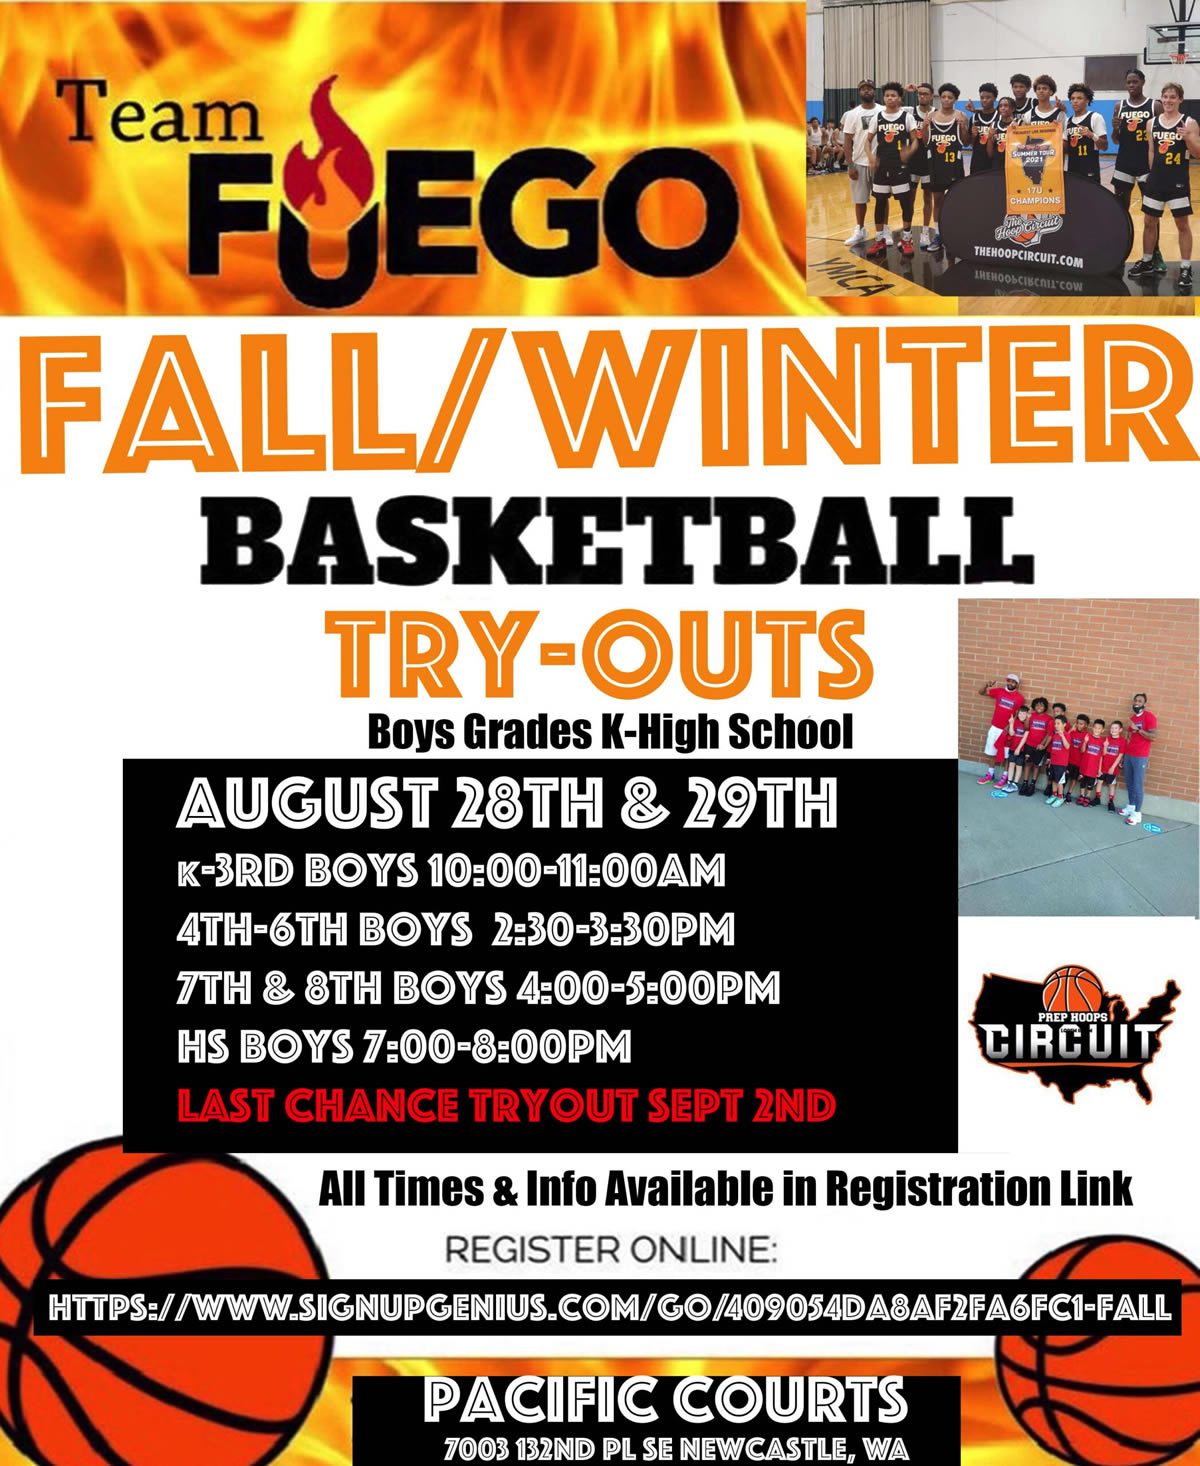 Team Fuego 2021 Tryouts